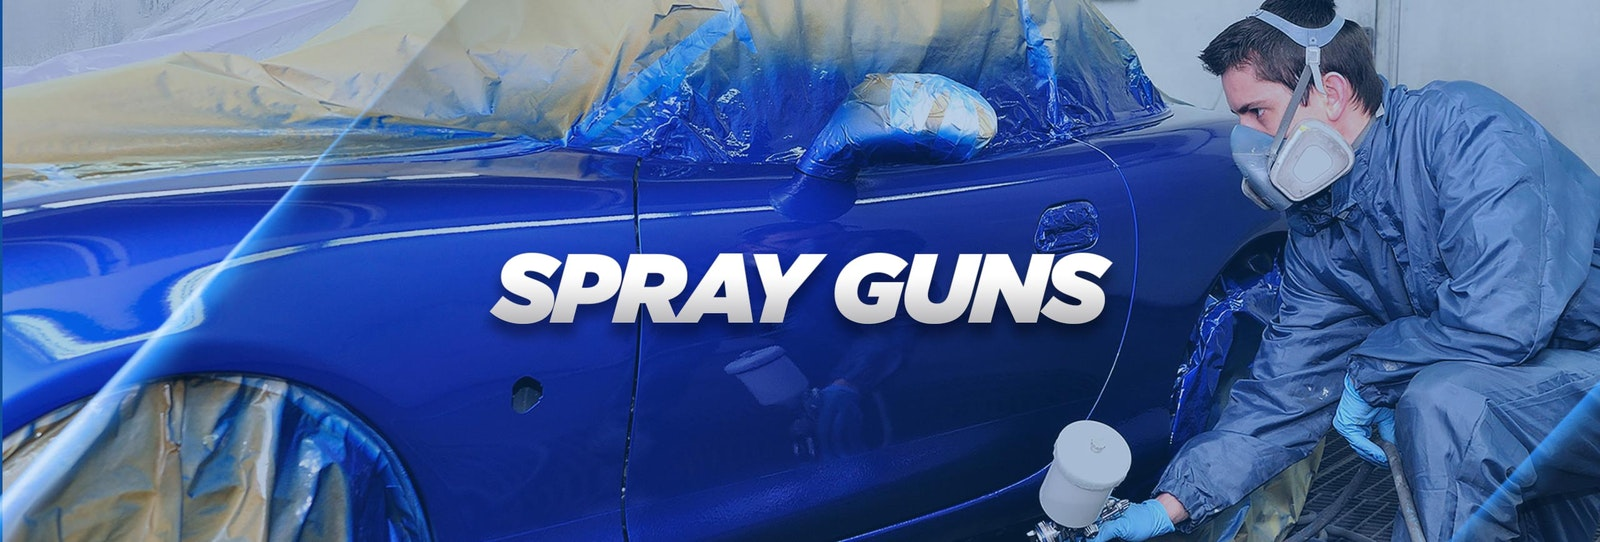 DeVilbiss Spray Guns